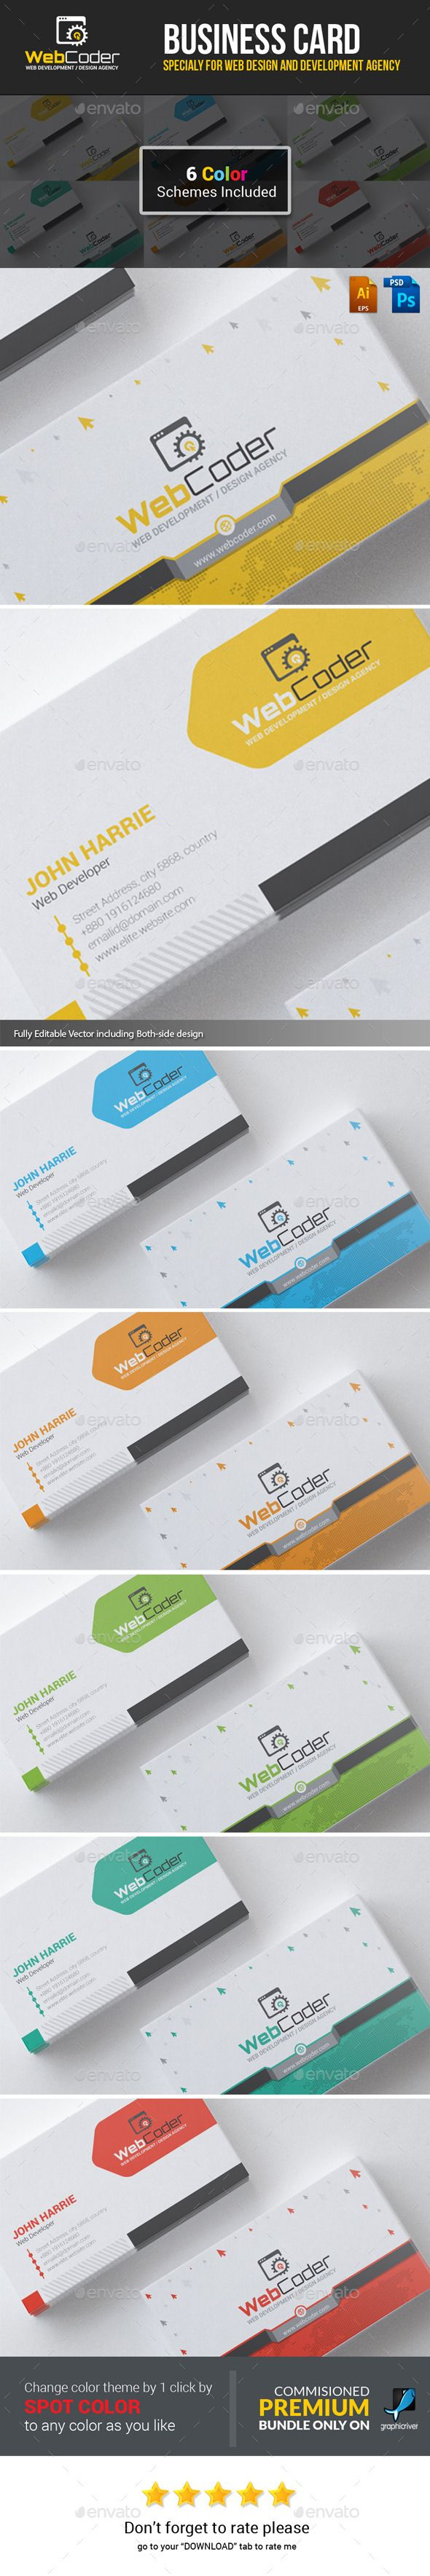 32 best corporate business card images on pinterest